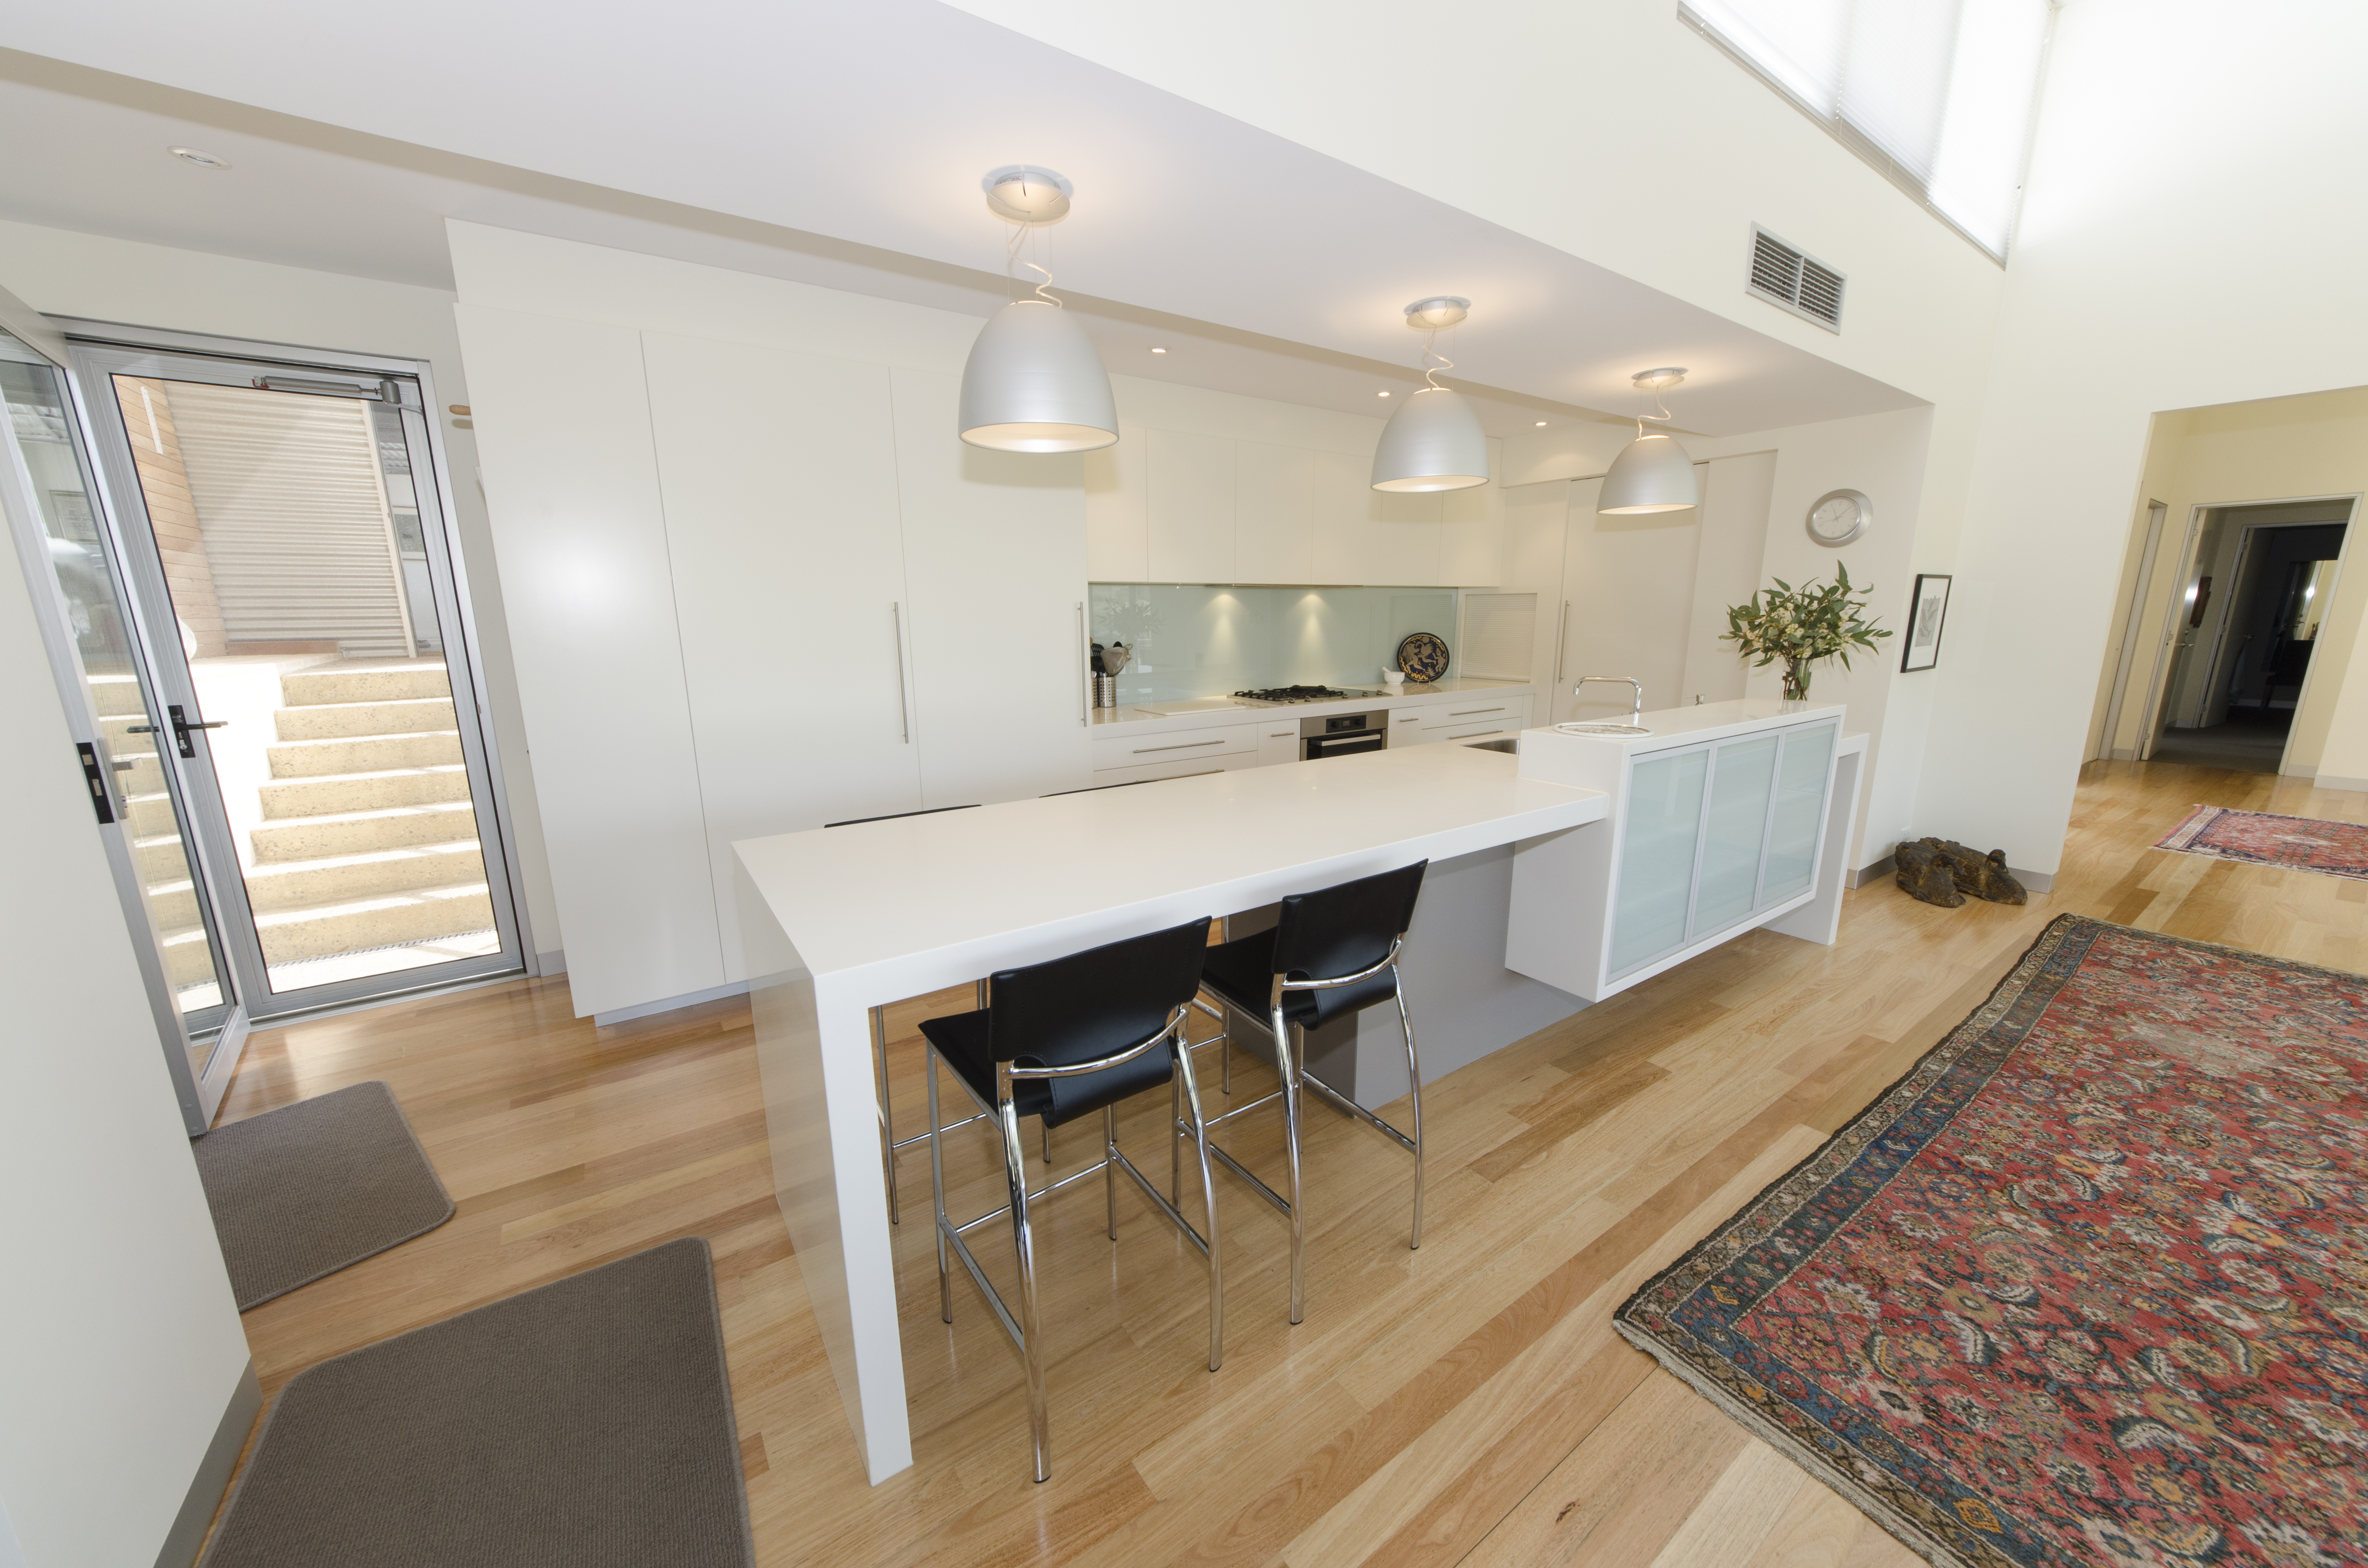 minimalist kitchen design that is perfect for entertaining